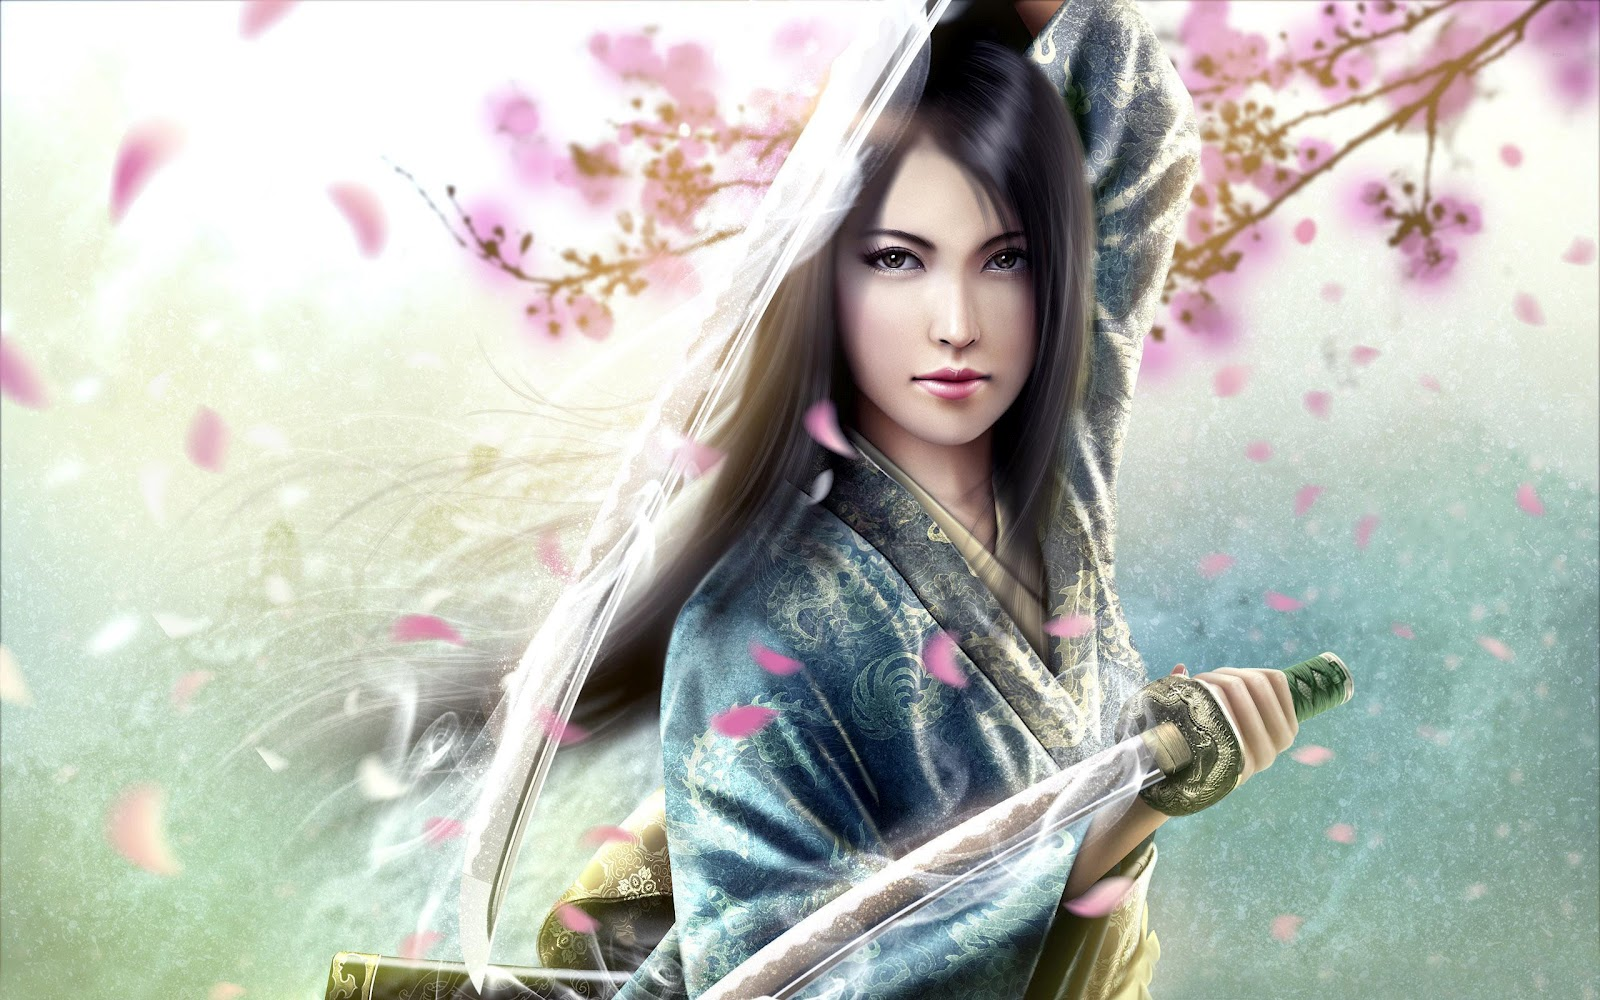 Samurai Girl Hd Wallpapers 8316 Wallpaper Wallpaper hd 1600x1000